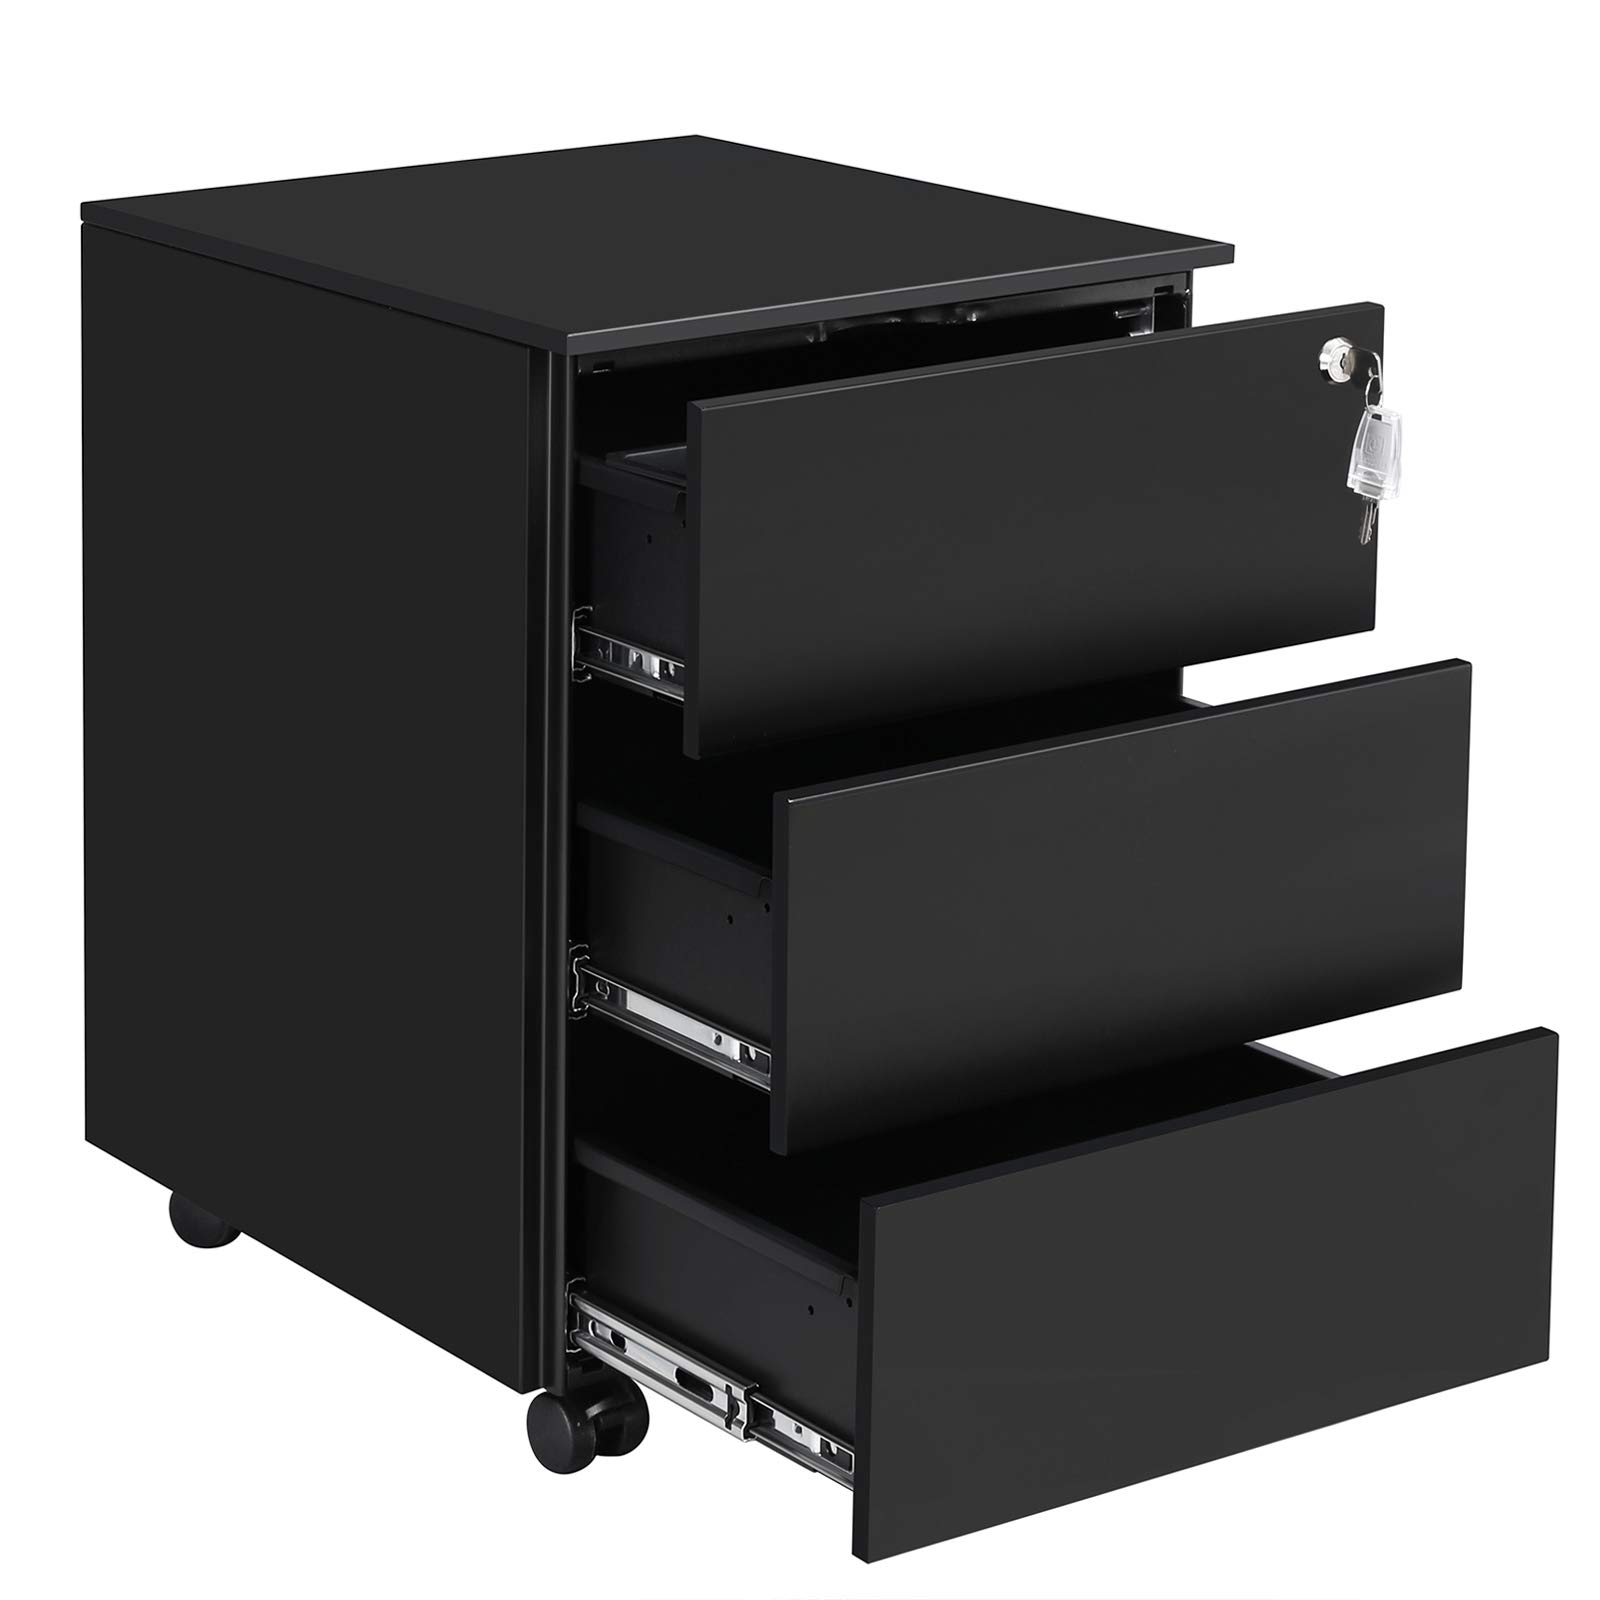 SONGMICS Mobile File Cabinet, Lockable, Pre-Assembled, with 3 Drawers, Hold Documents, Stationery, 15.4 x 17.7 x 21.7 Inches, Matte Black UOFC63BK